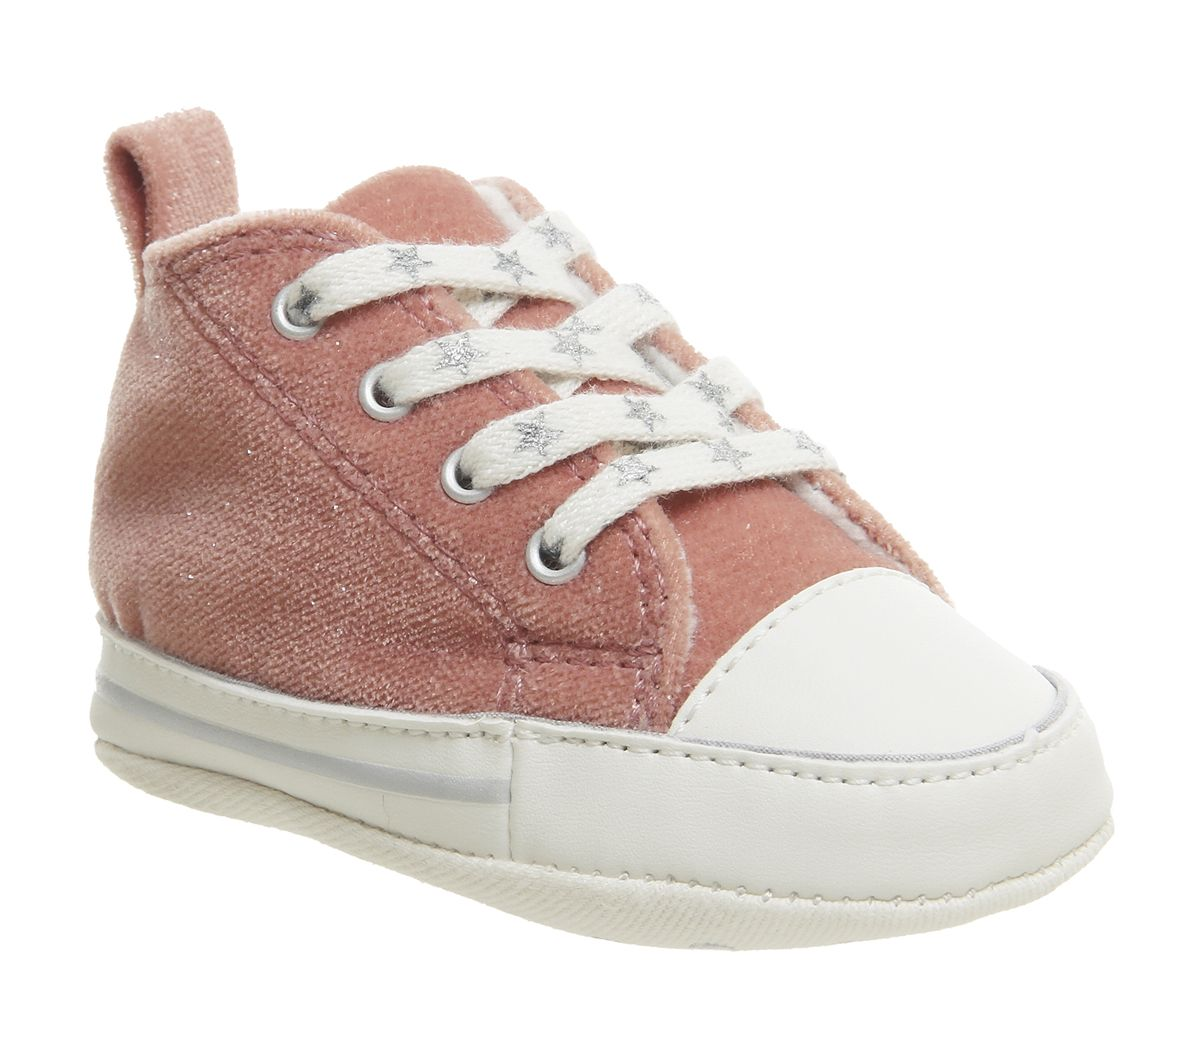 9ea0f28302c1c Converse First Star Rust Pink White Wolf Grey - Unisex